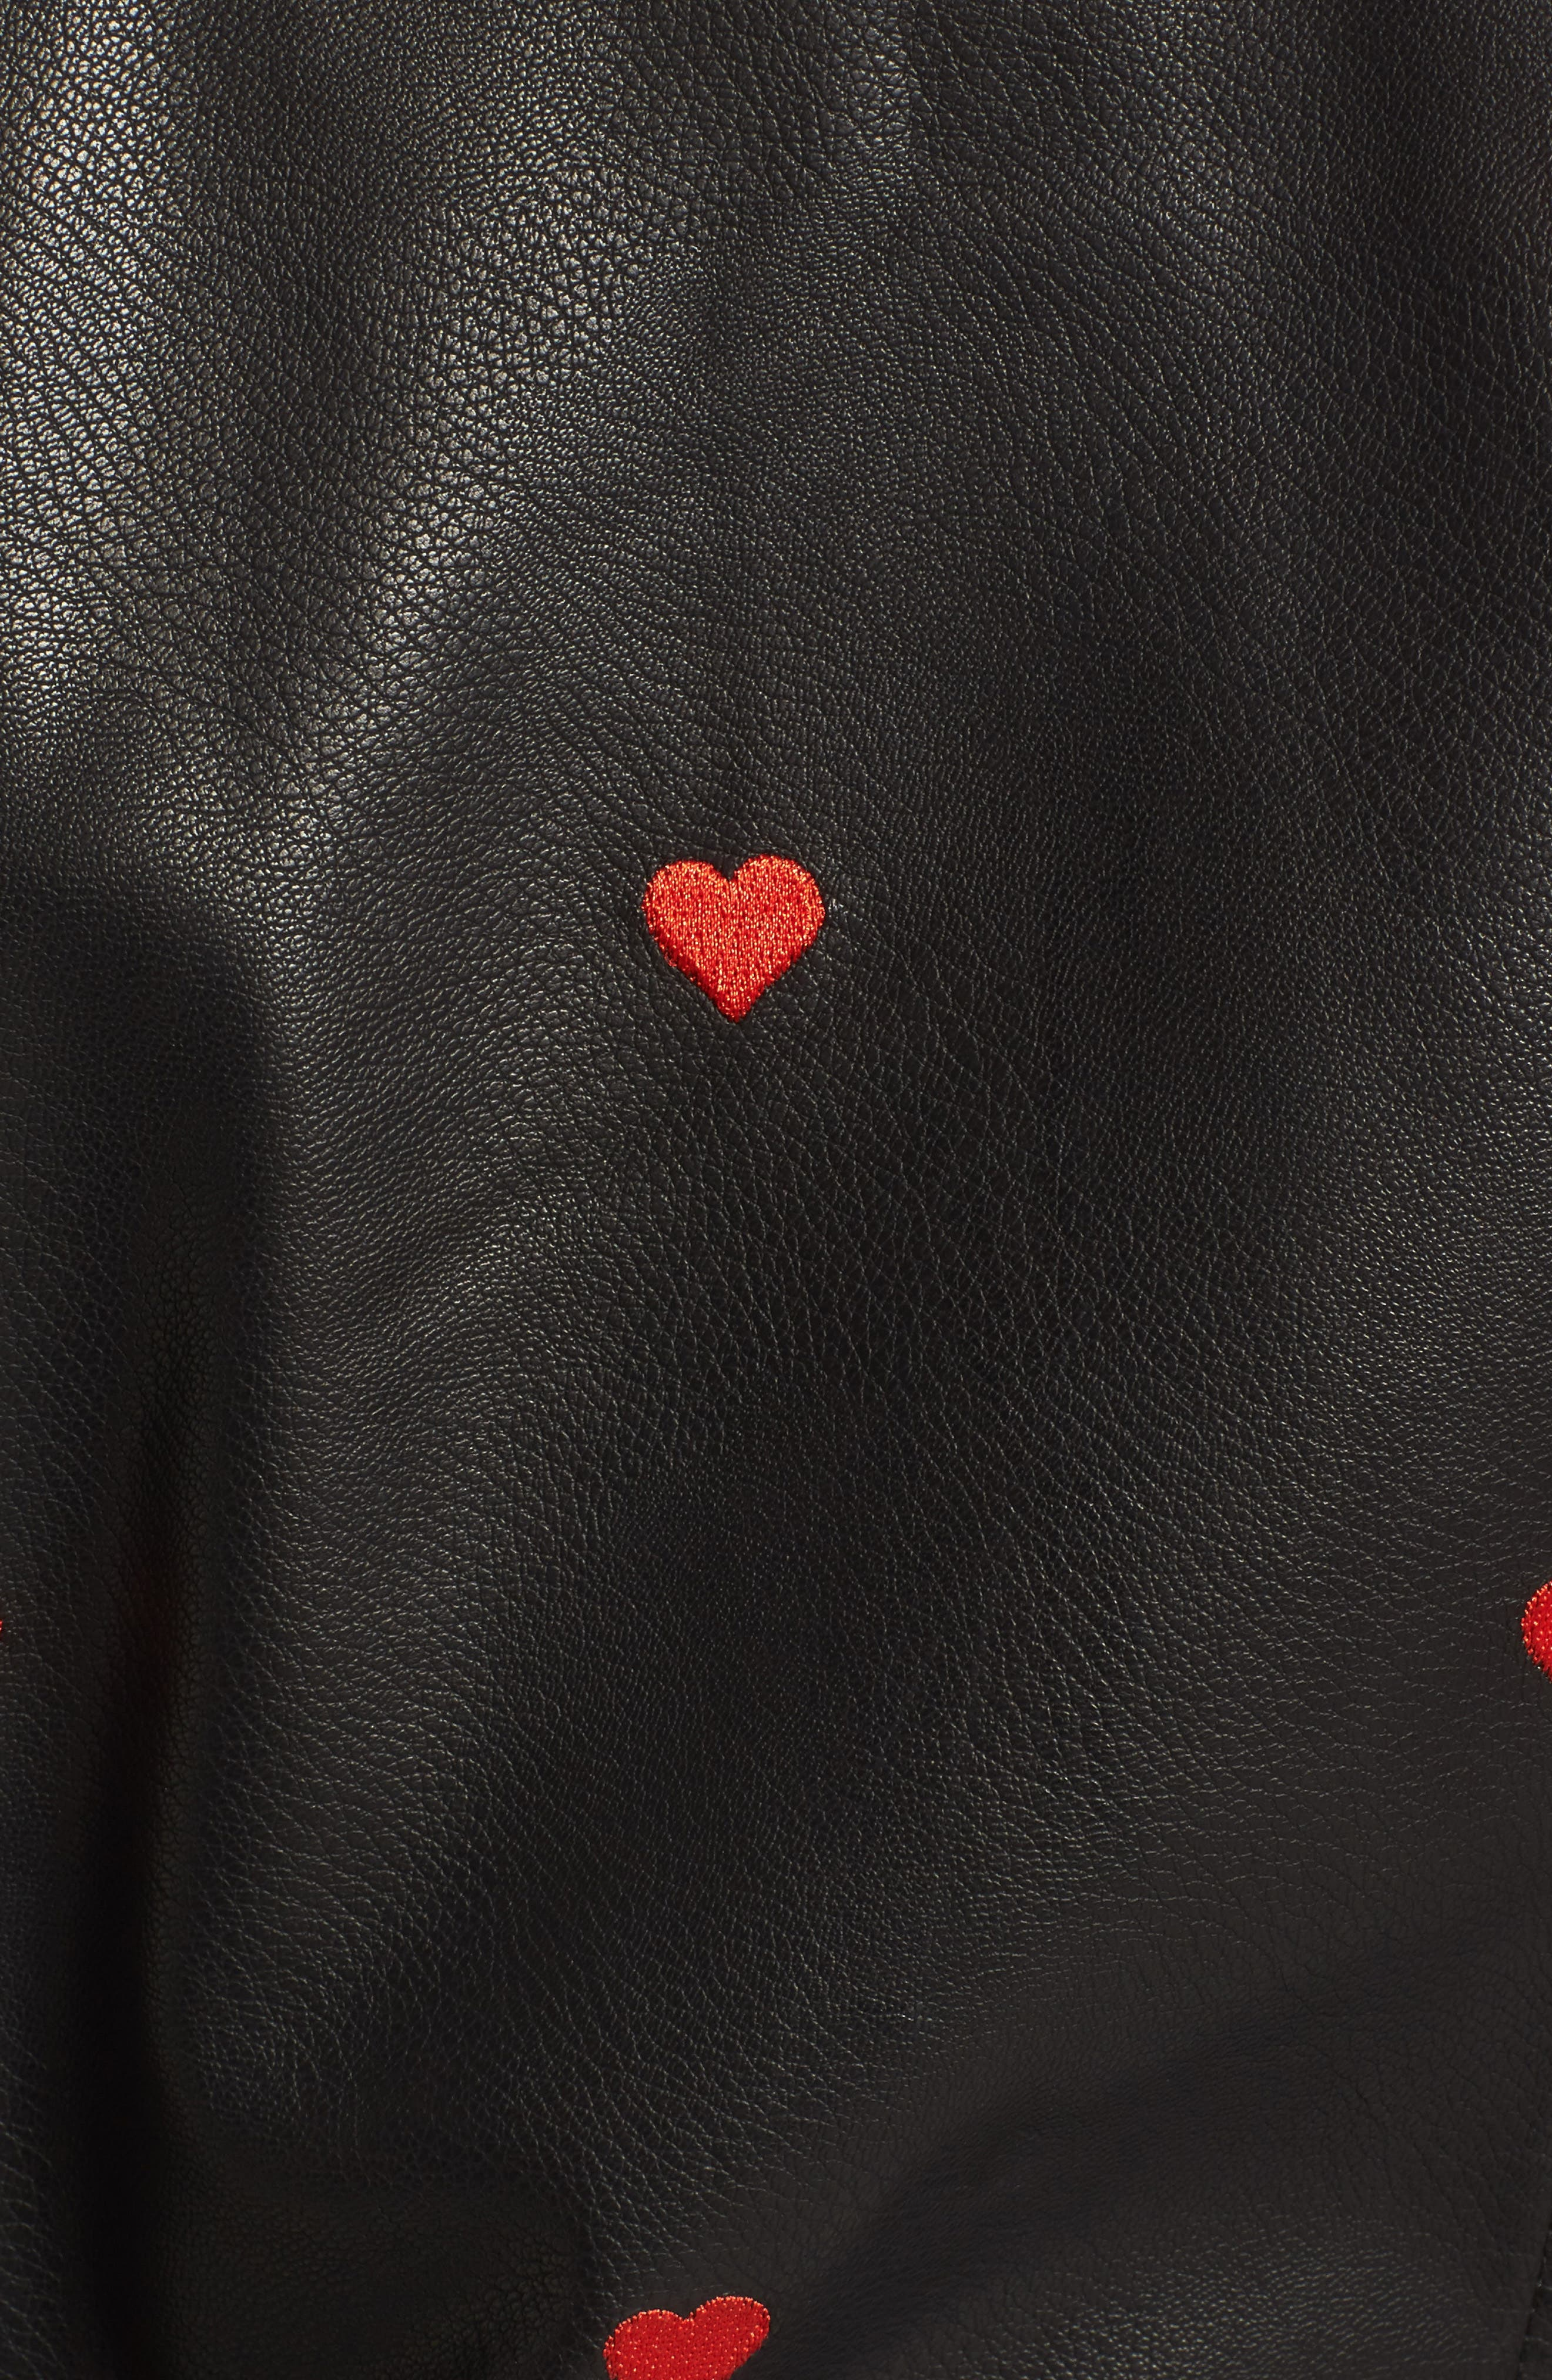 Heart Embroidered Faux Leather Moto Jacket,                             Alternate thumbnail 5, color,                             Black